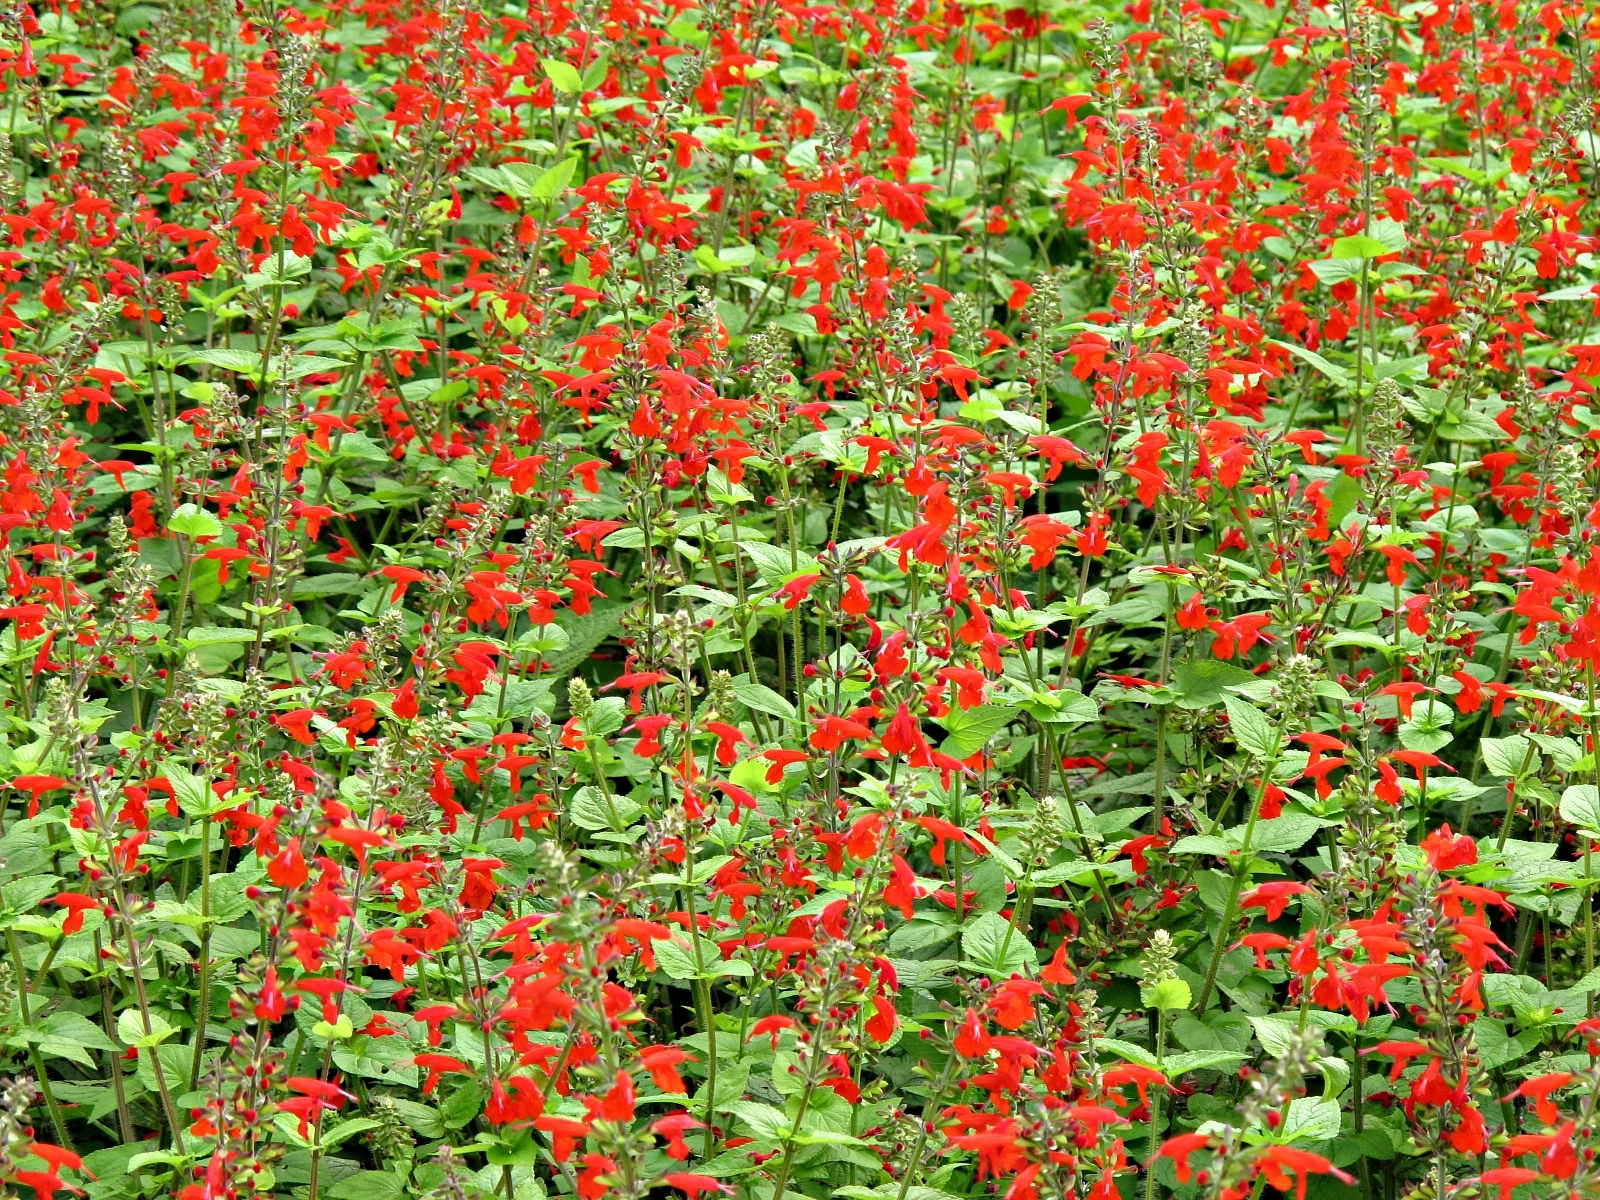 Texas Sage, Salvia coccinea, Lady in Red, Longwood Gardens, Kennett Square, PA USA IMG 5431 Canon PowerShot G11 Camera Photograph by Roy Kelley Roy and Dolores Kelley Photographs